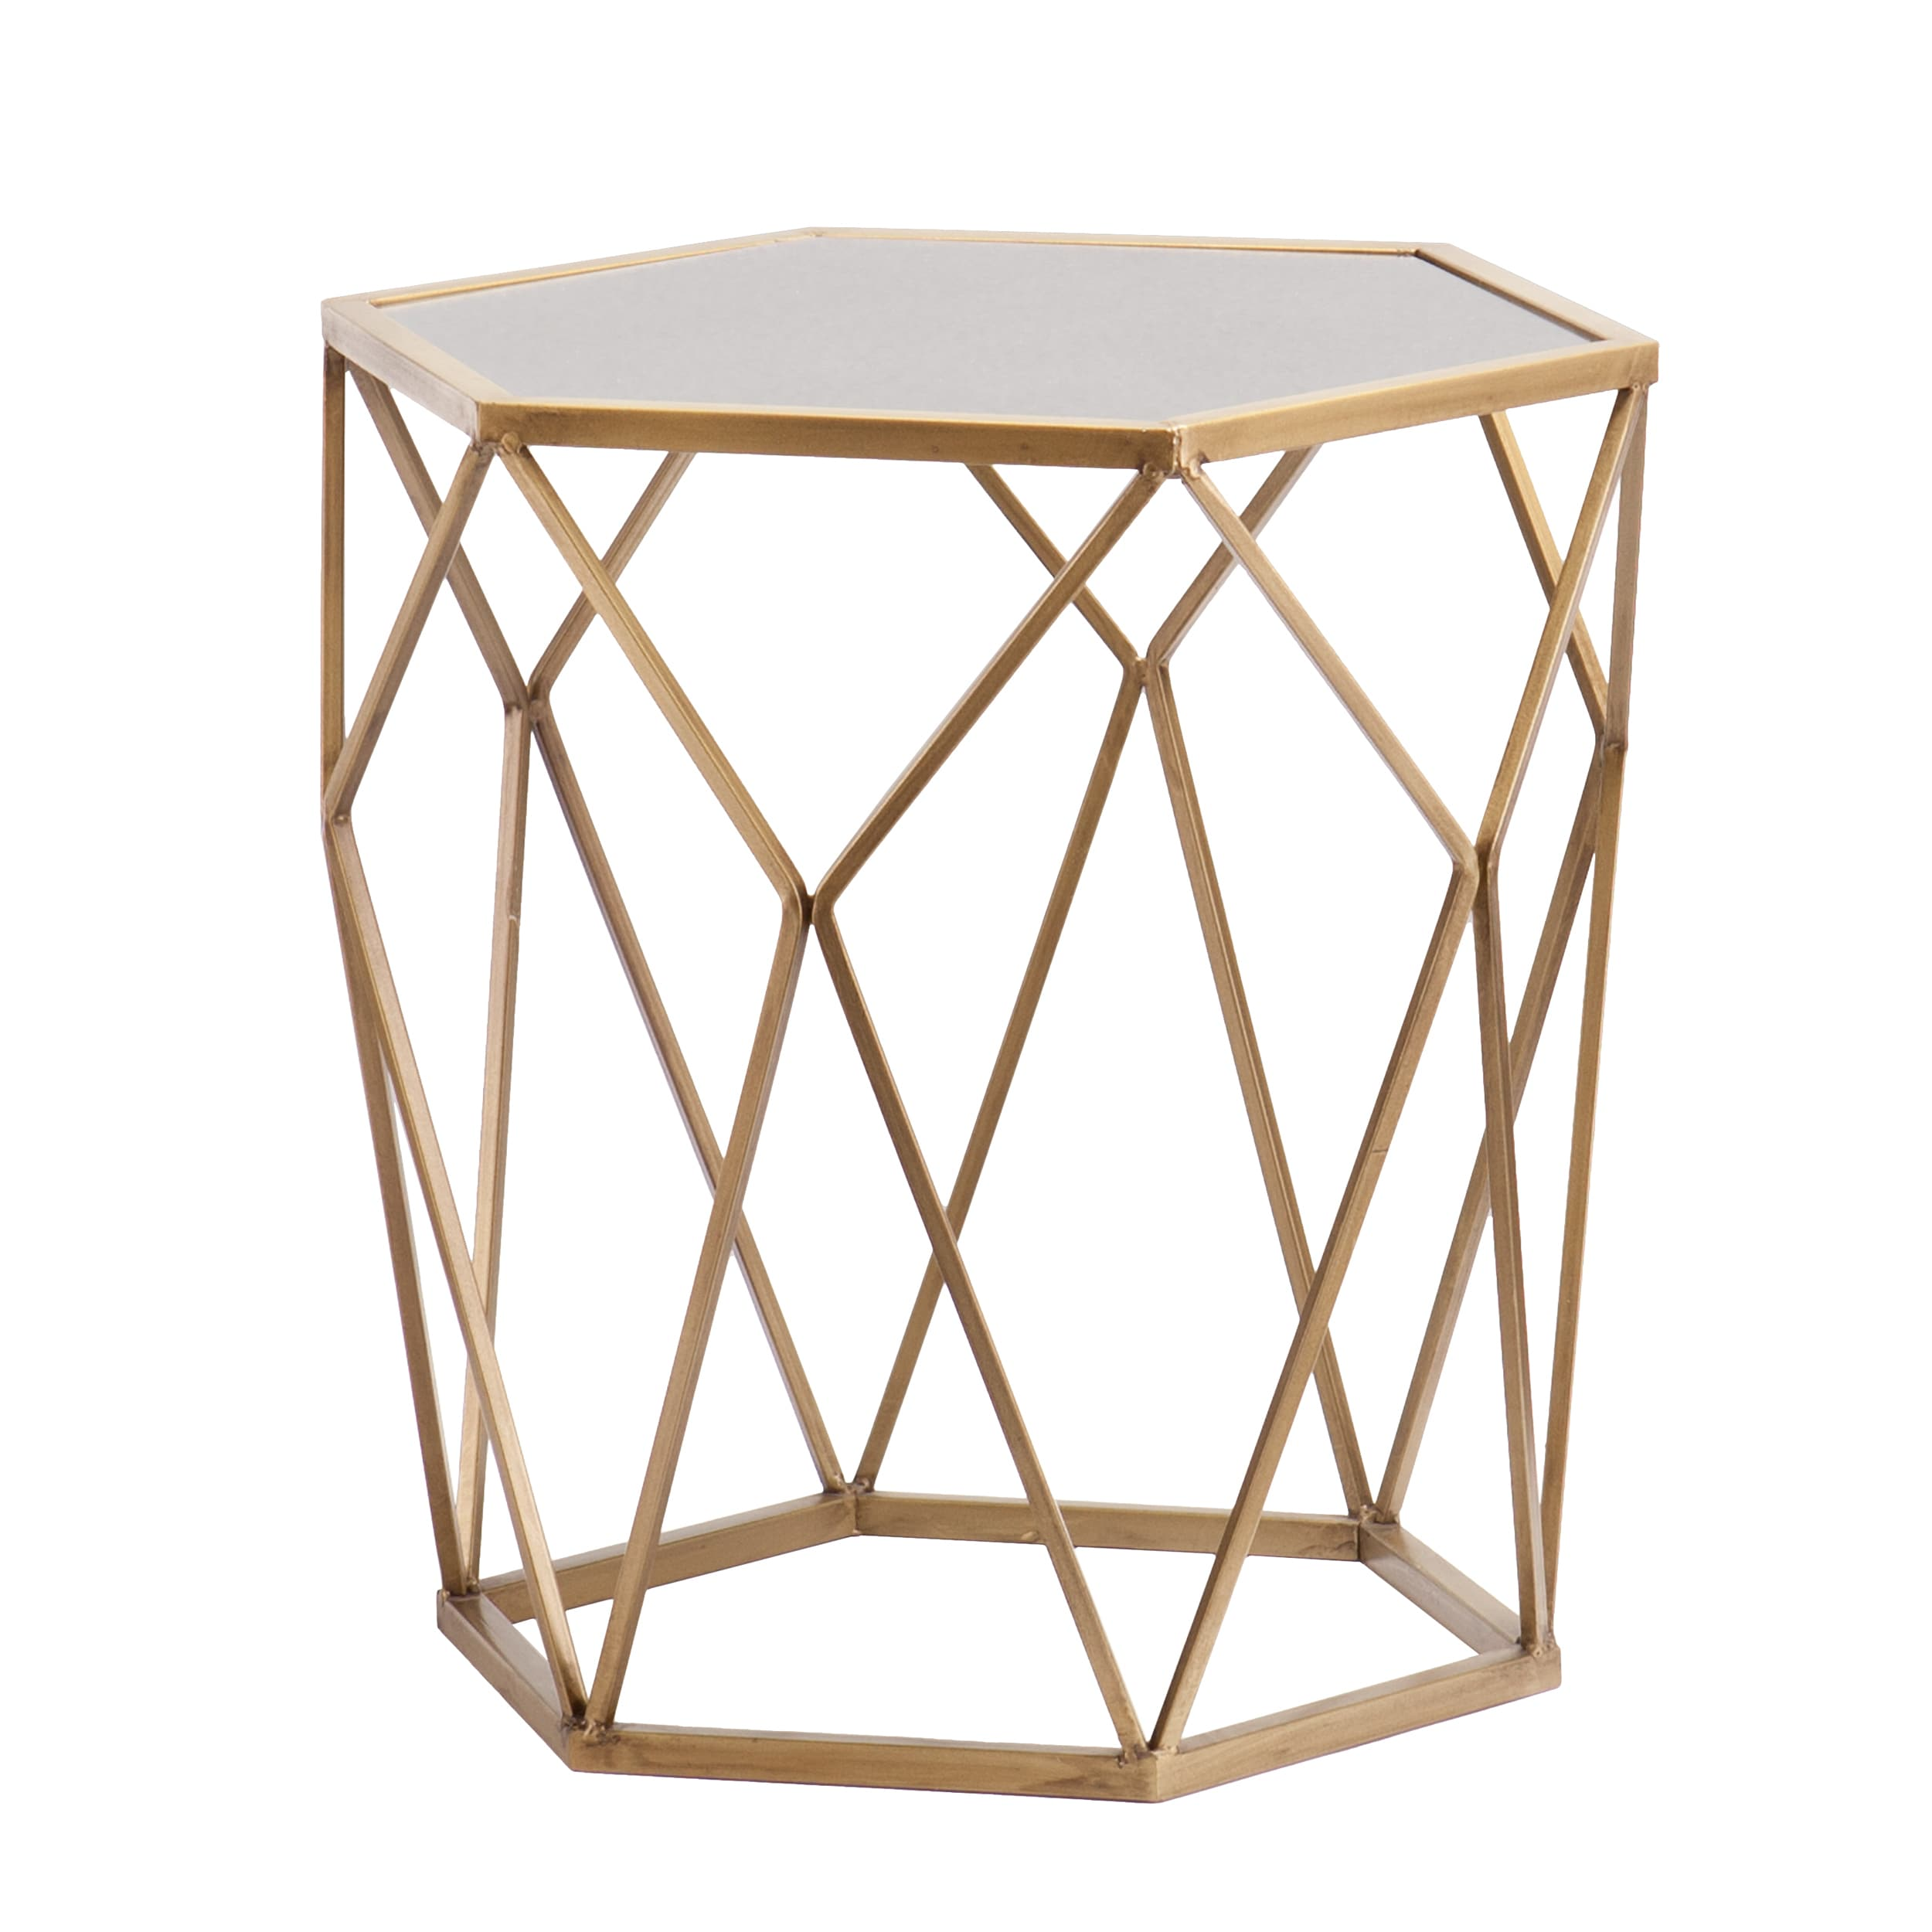 gold accent table ikaittsttt decor set the latest information home gallery related iconic modern chairs target pouf long narrow end ping sites tiffany style stained glass lamp